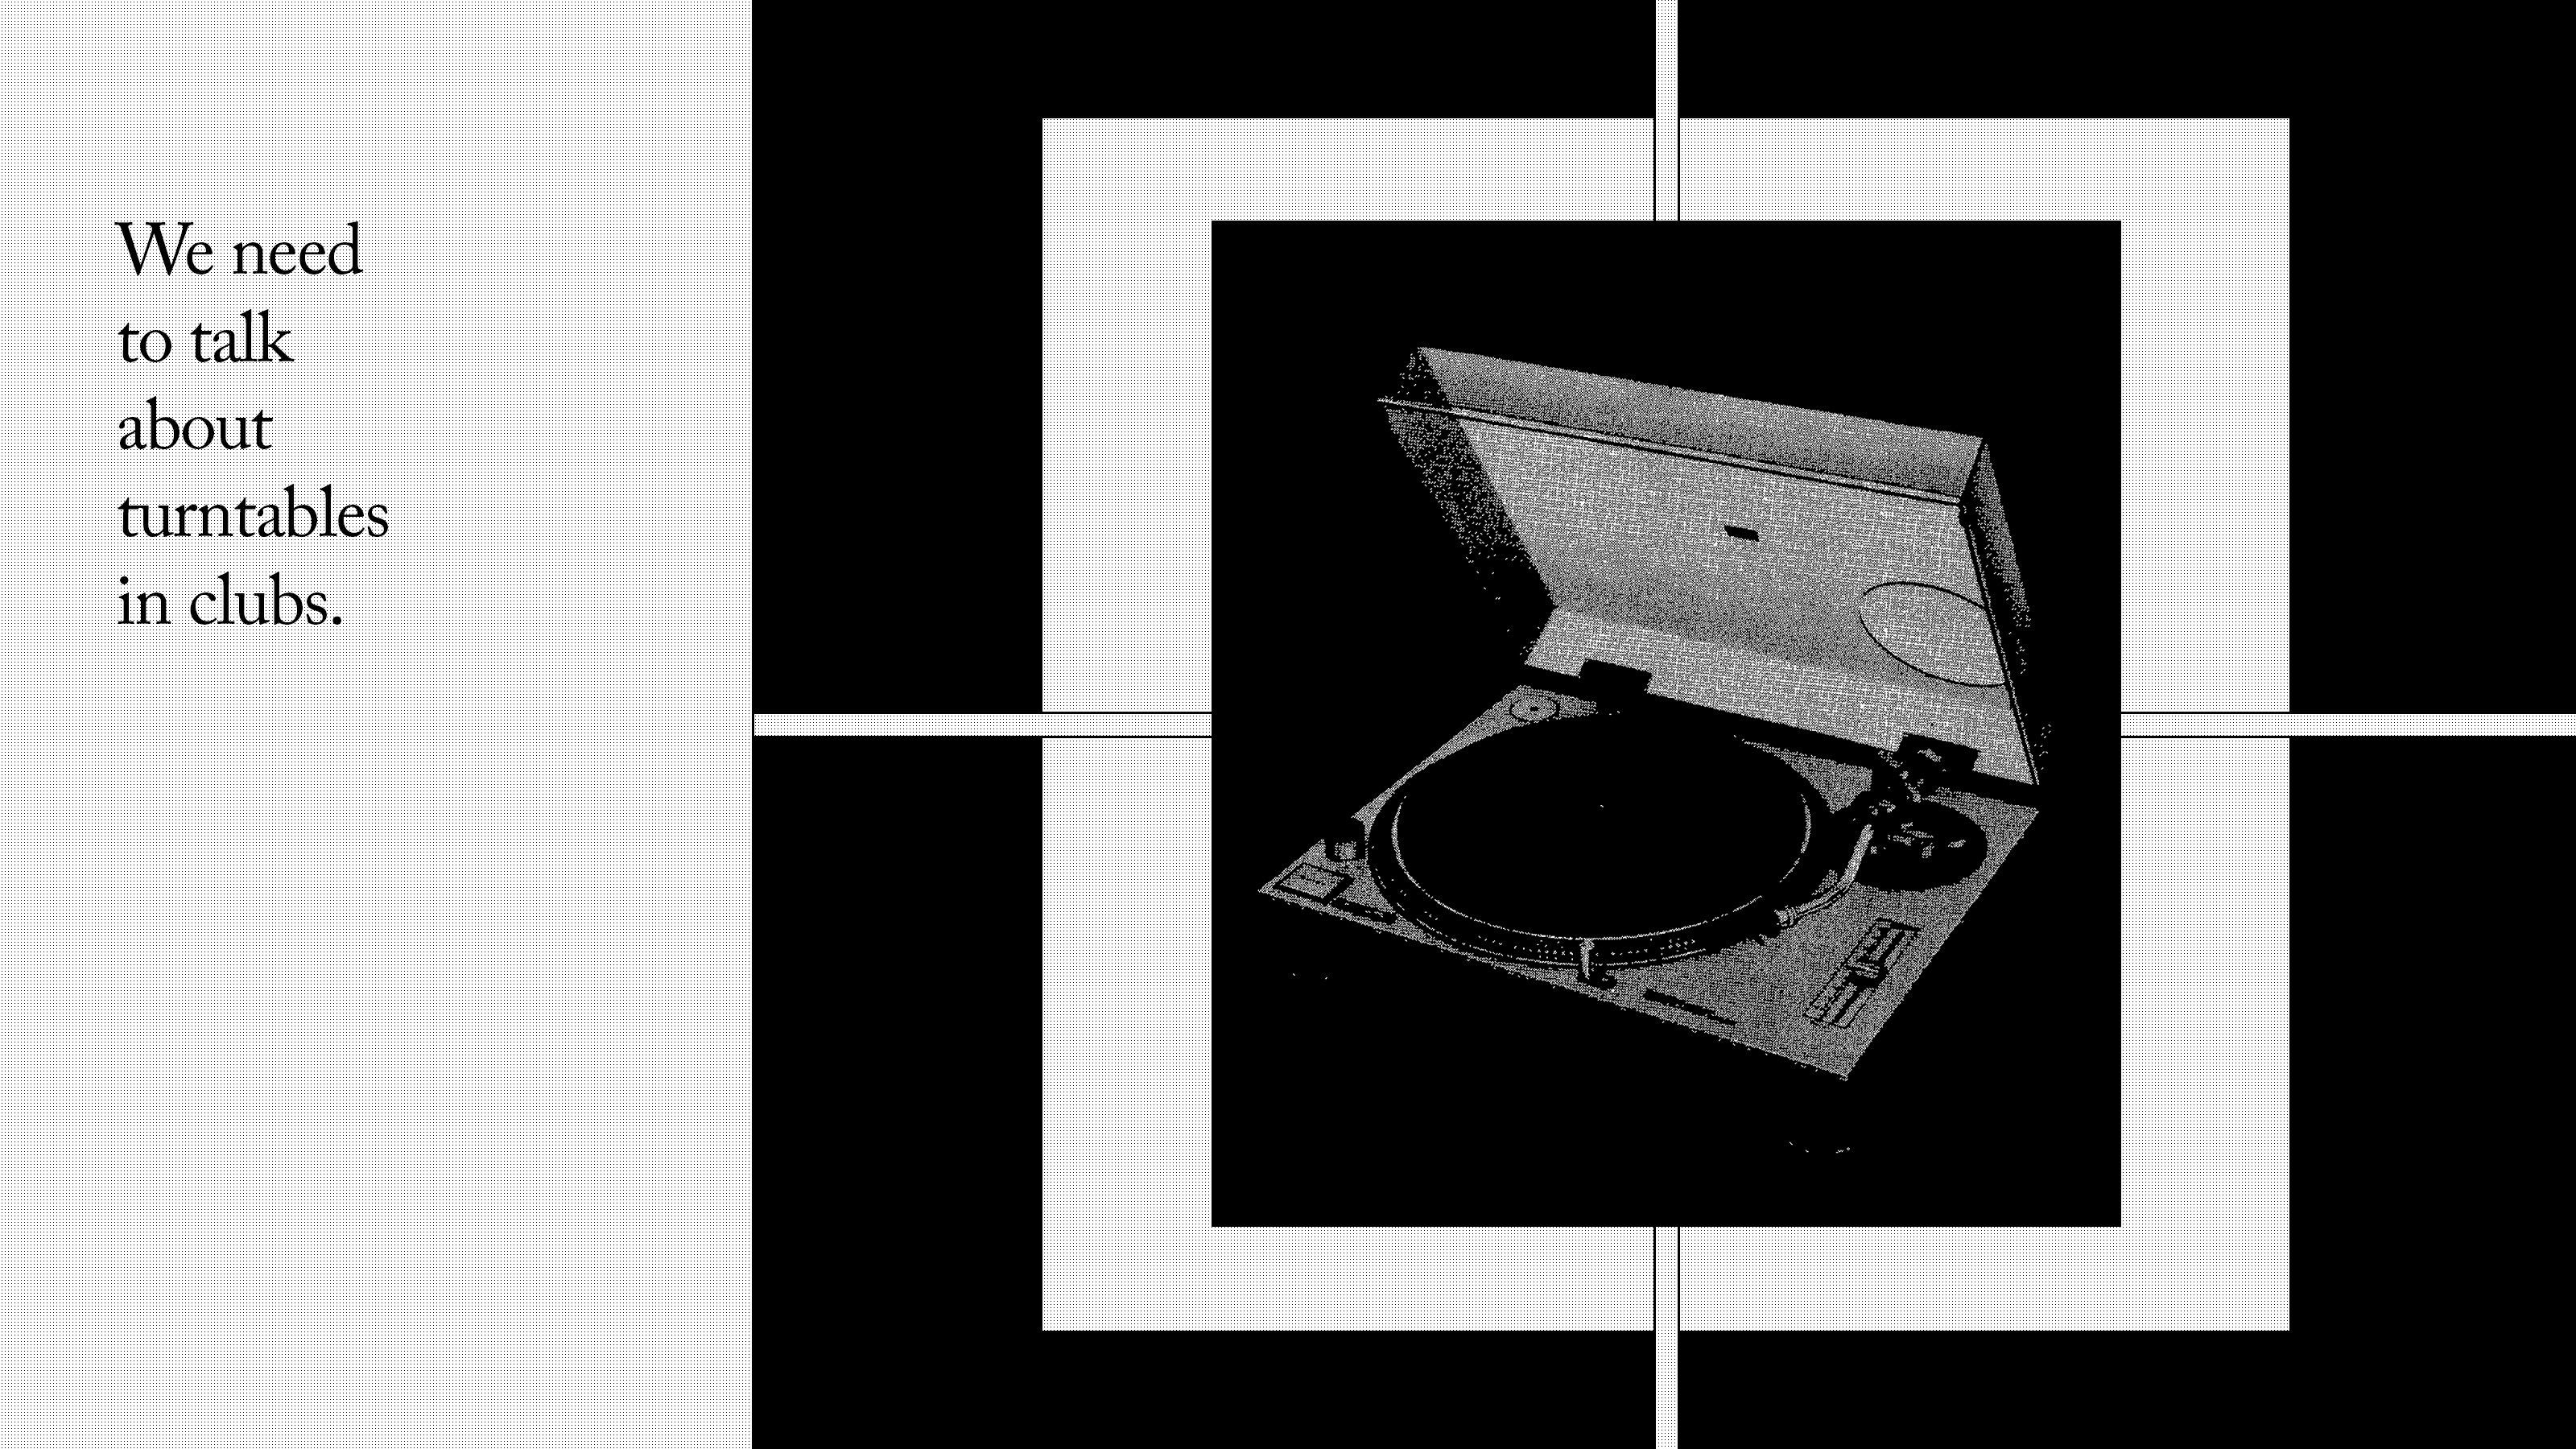 We need to talk about turntables in clubs